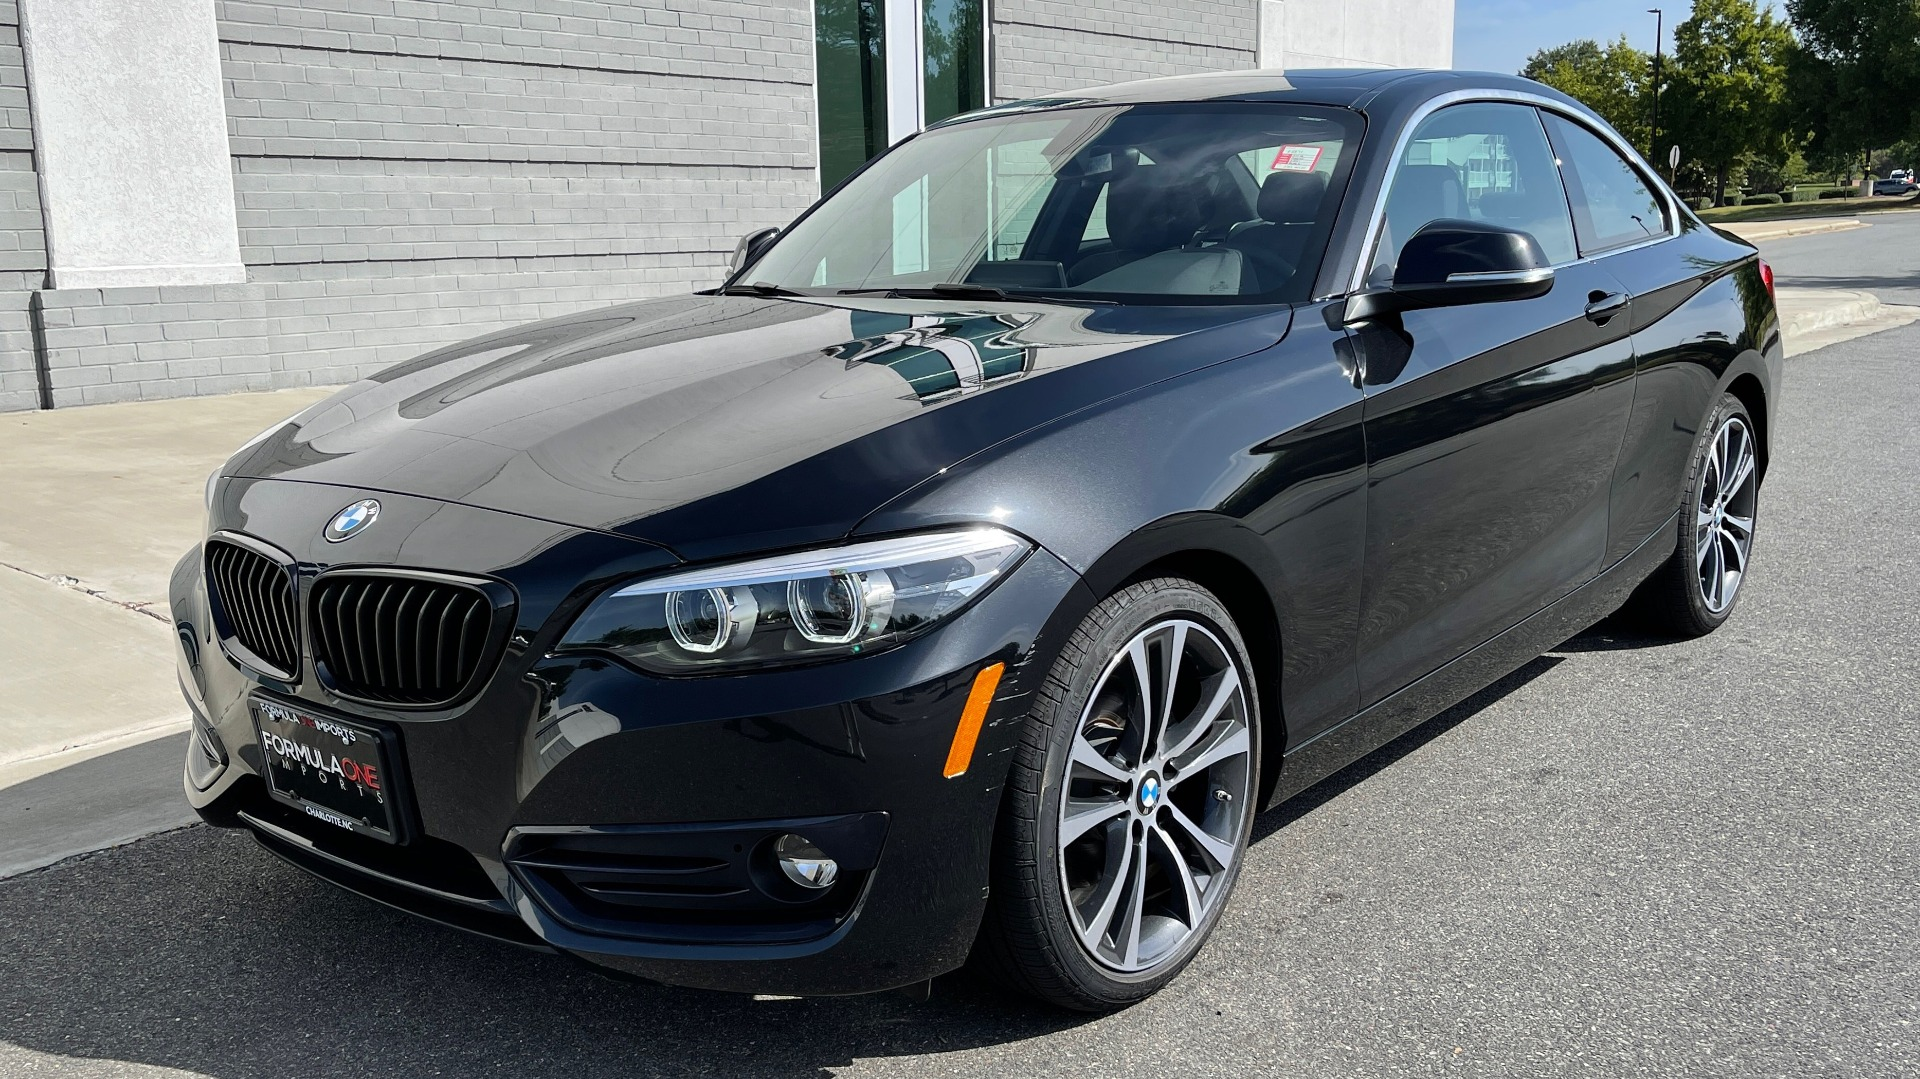 Used 2018 BMW 2 SERIES 230I XDRIVE PREMIUM / CONV PKG / NAV / SUNROOF / REARVIEW for sale $30,795 at Formula Imports in Charlotte NC 28227 3